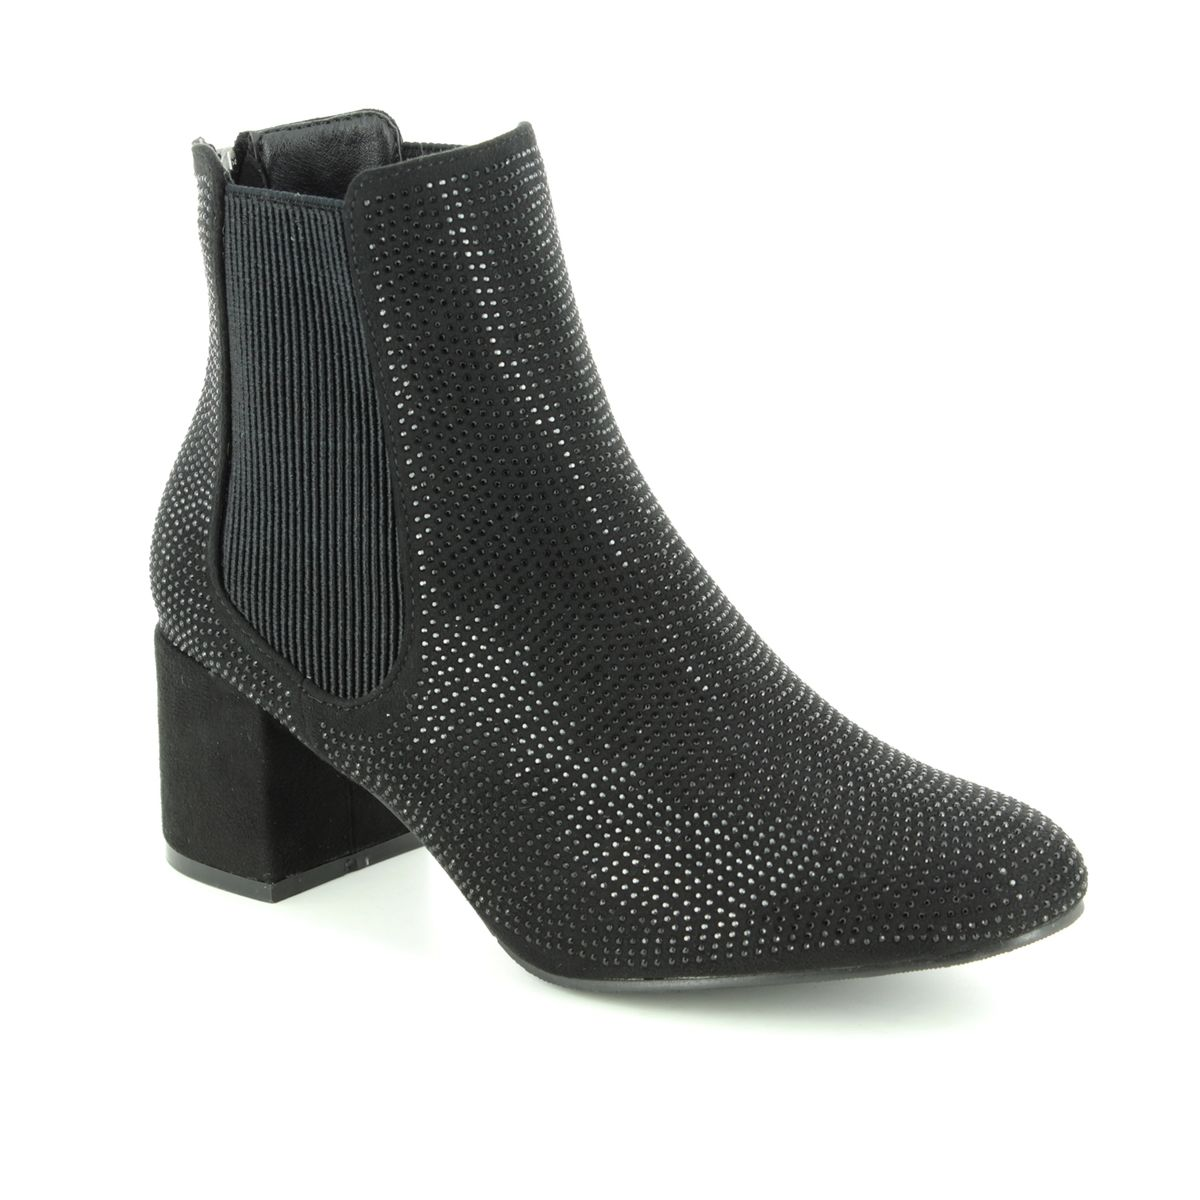 1e213eff Heavenly Feet Ankle Boots - Black gold - 7218/30 WAVE